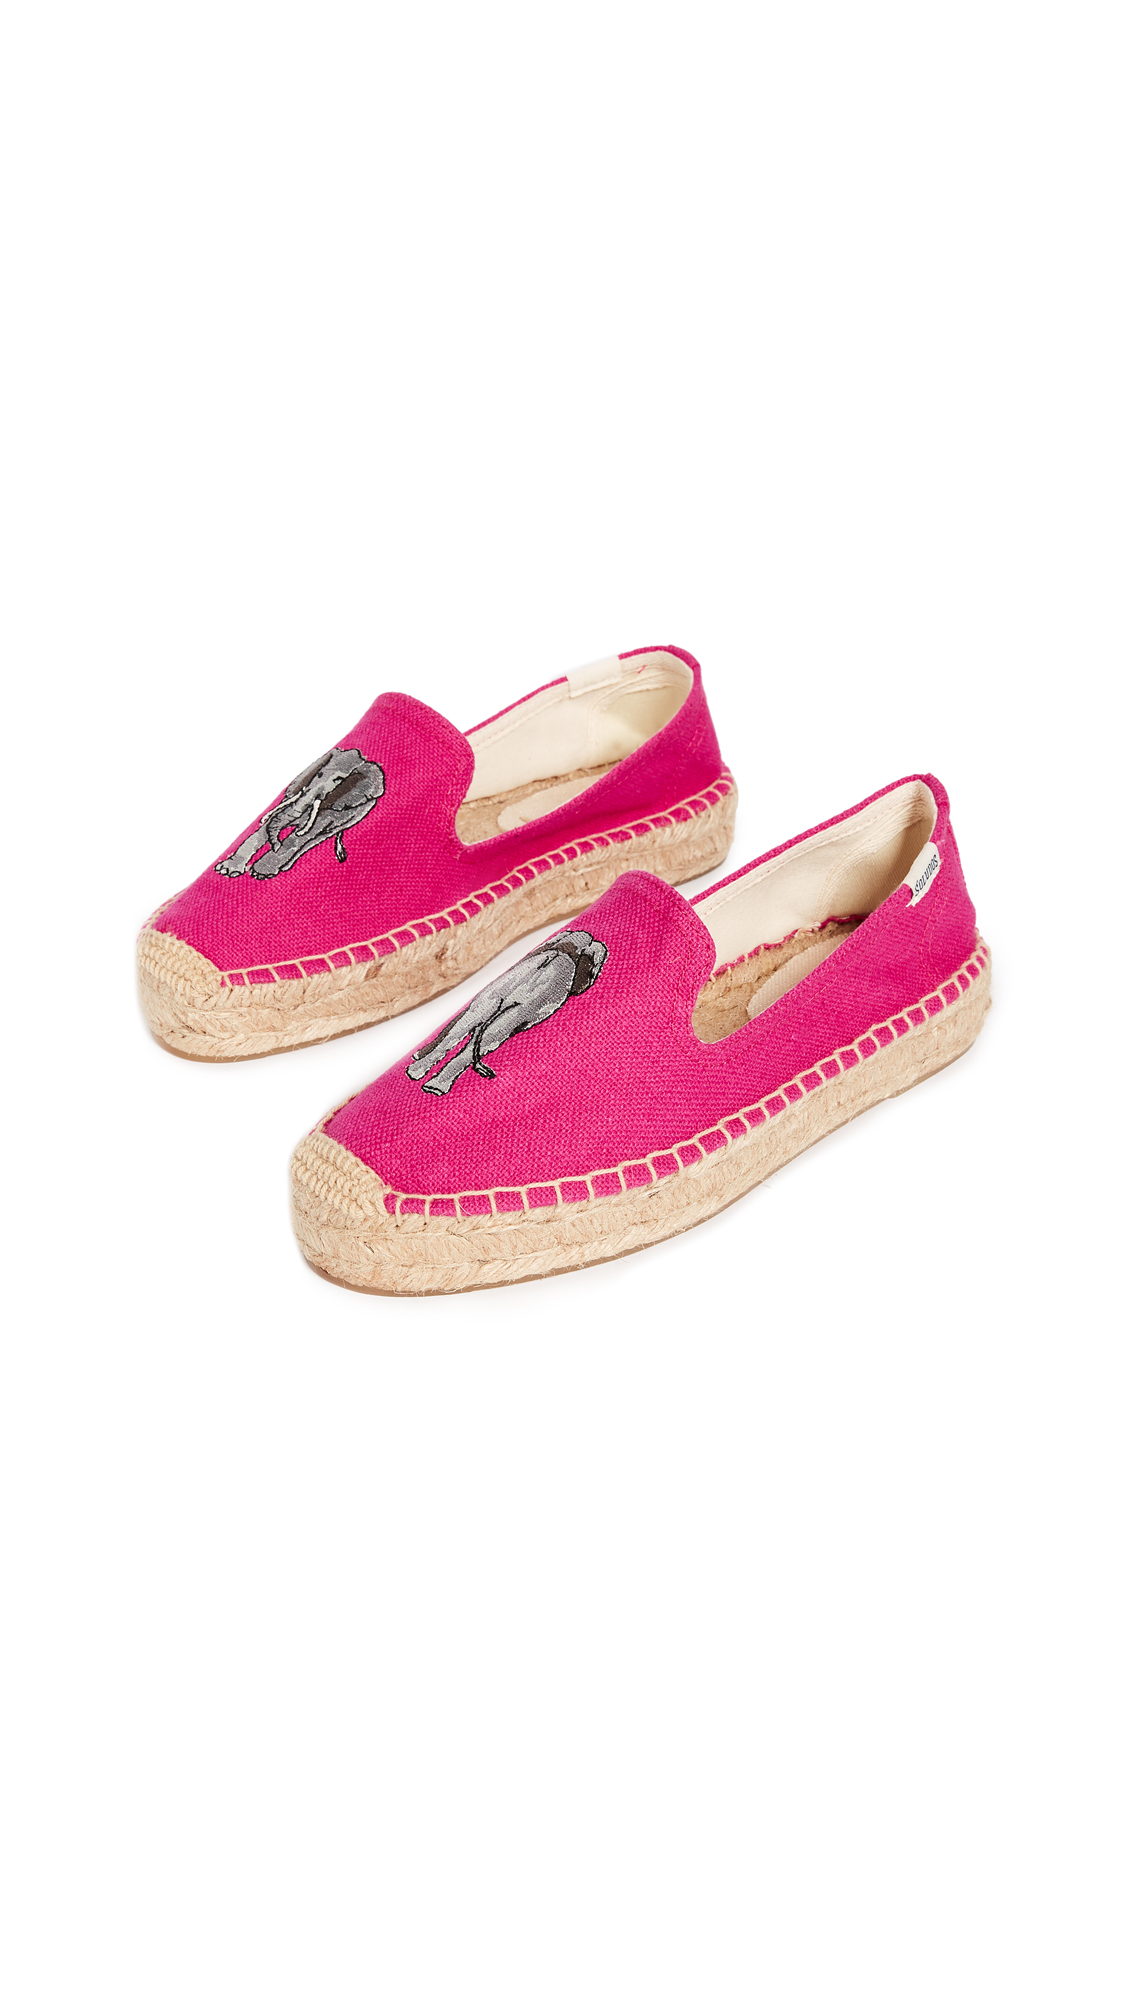 Soludos Elephant Platform Smoking Slippers - Fuchsia